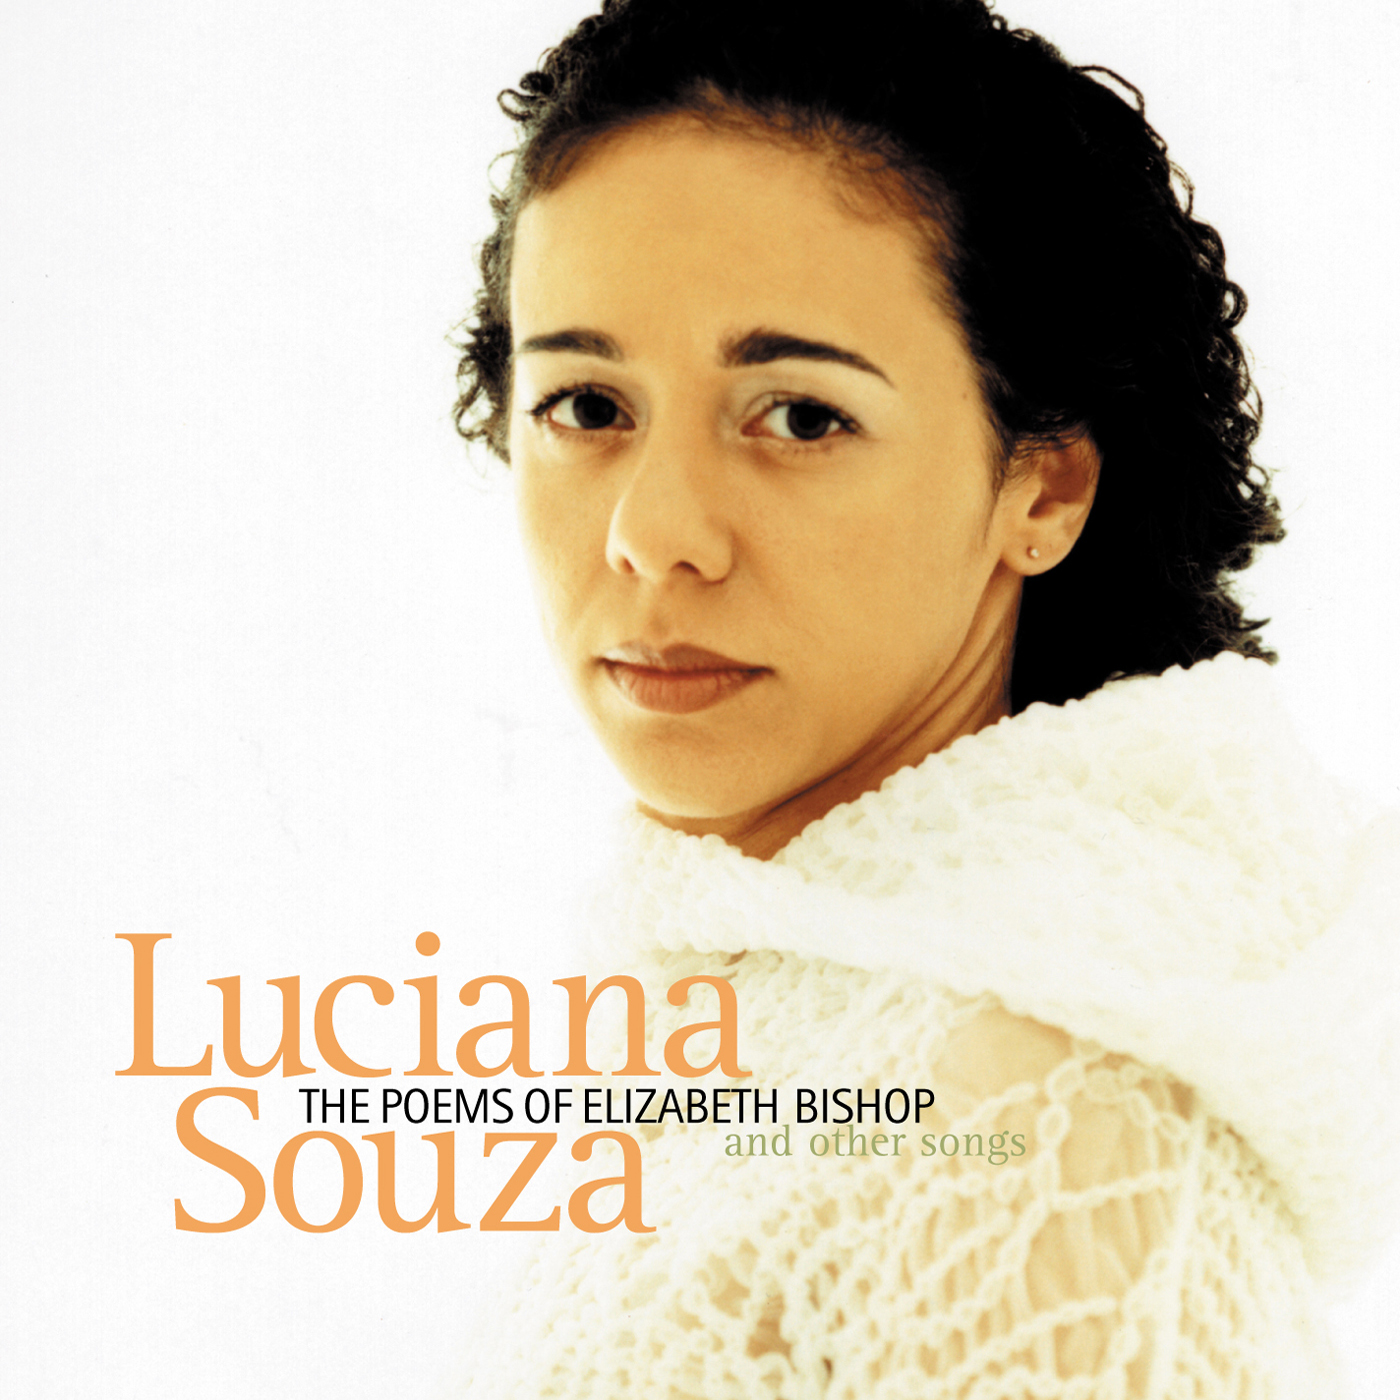 The Poems of Elizabeth Bishop and Other Songs by Luciana Souza cover